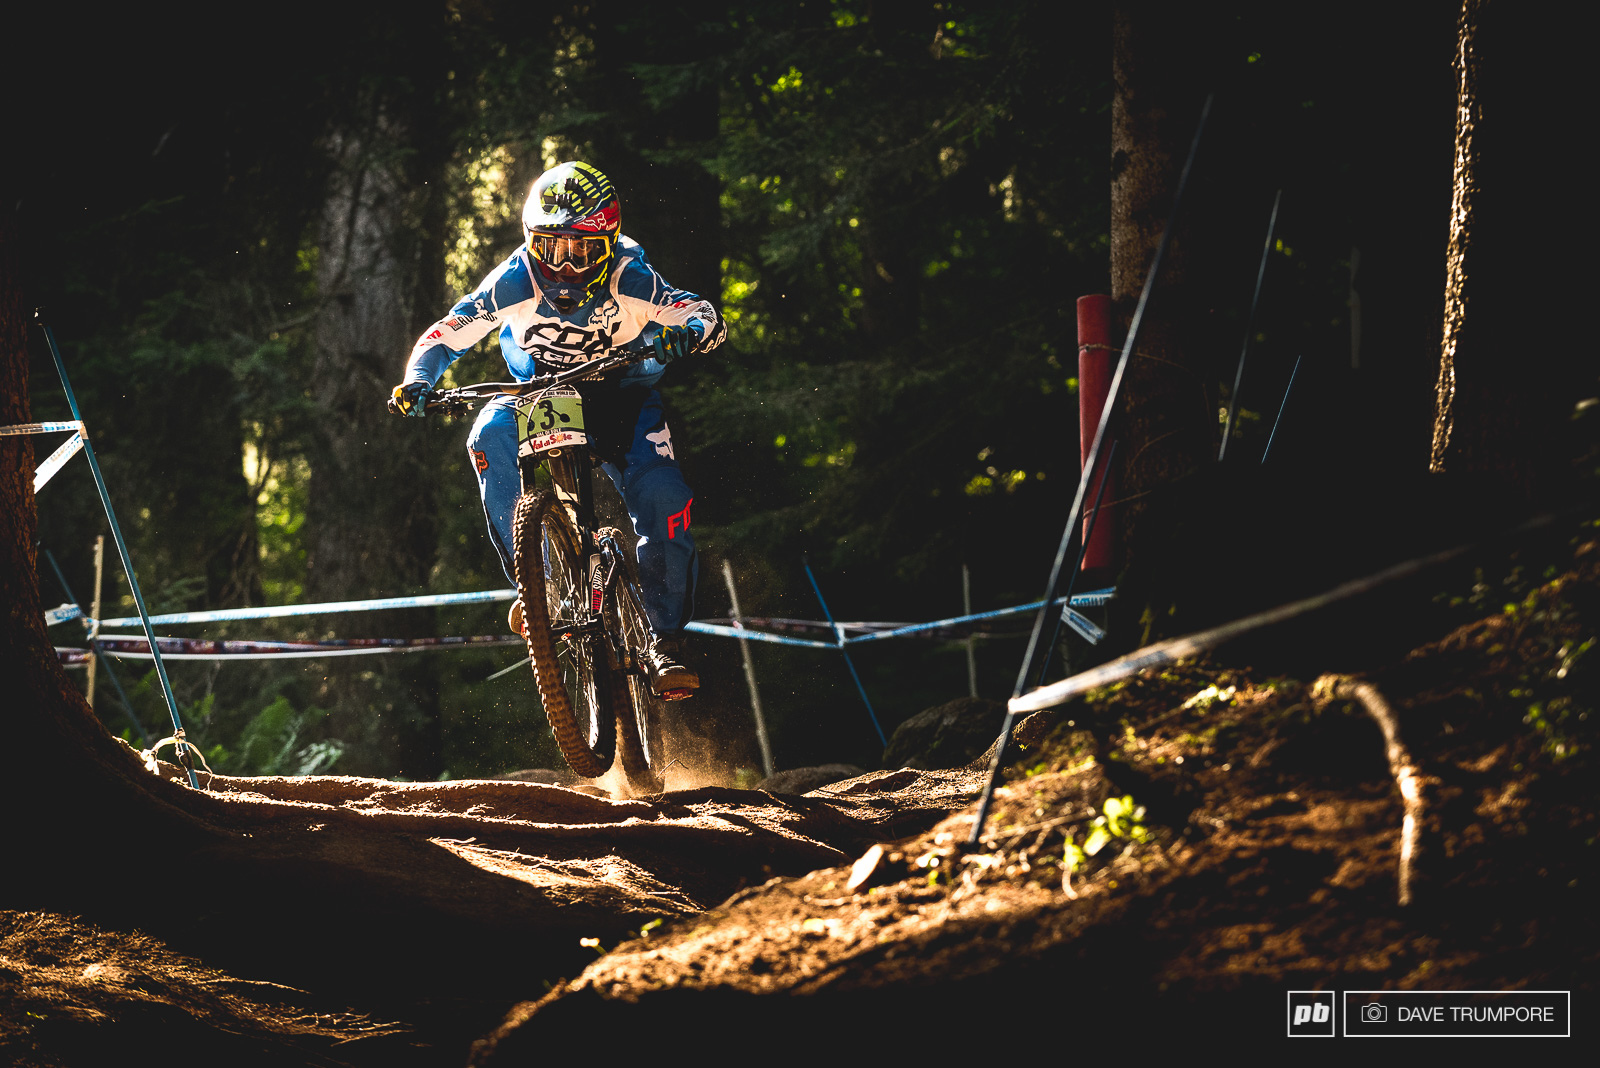 Alex Marin crashed half way down and could not back up his first place from qualifying in Juniors.